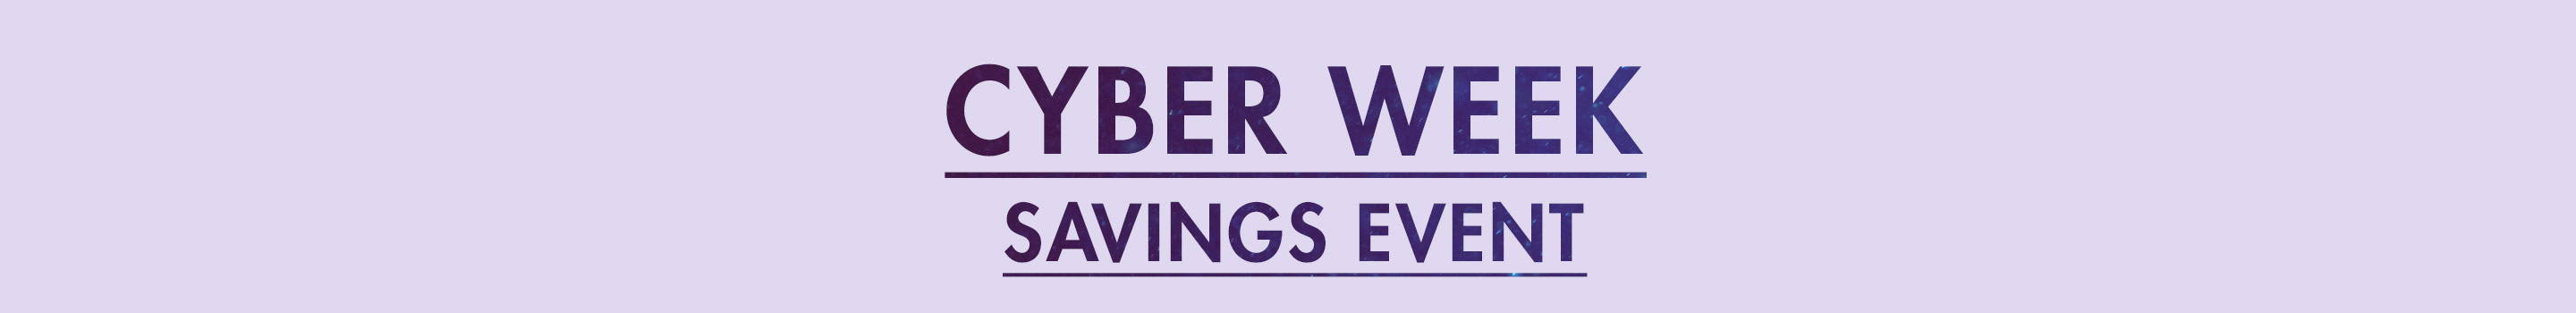 Cyber Week Savings Event